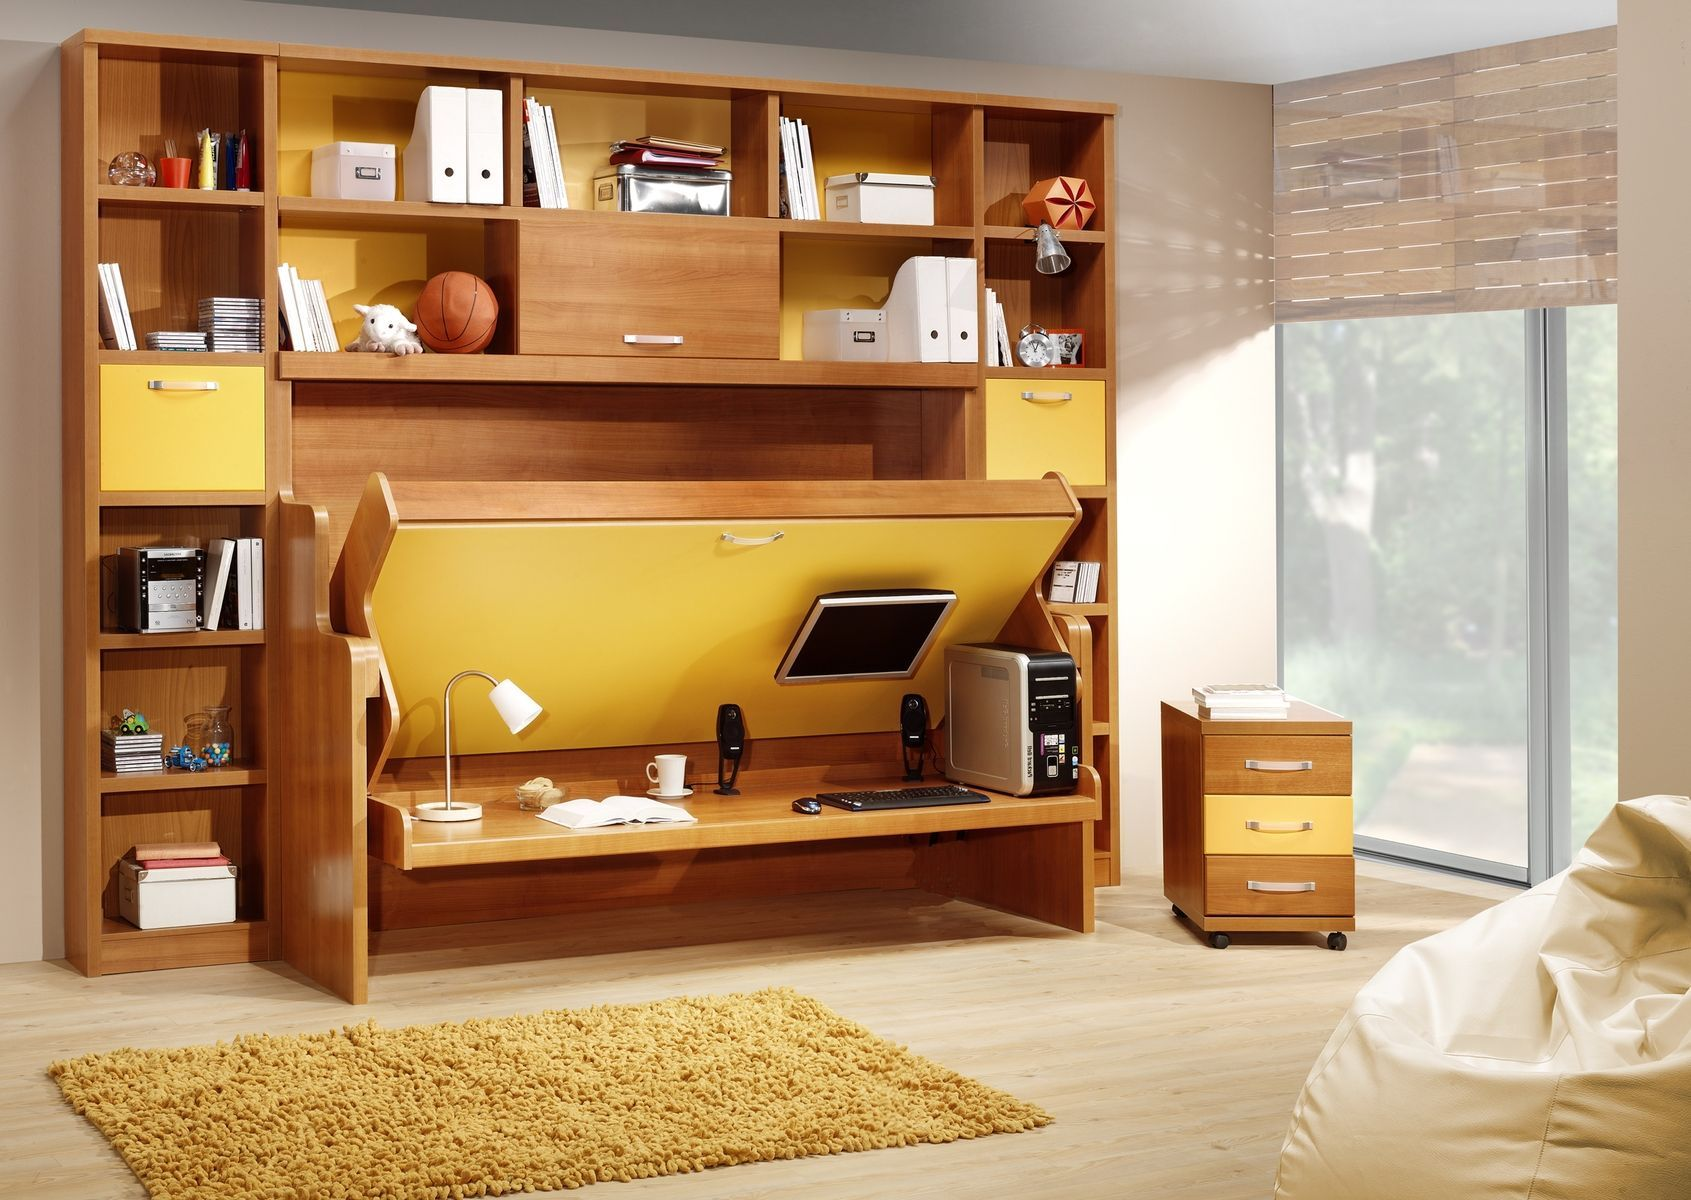 Excellent Design Ideas Of Convertible Furniture For Small